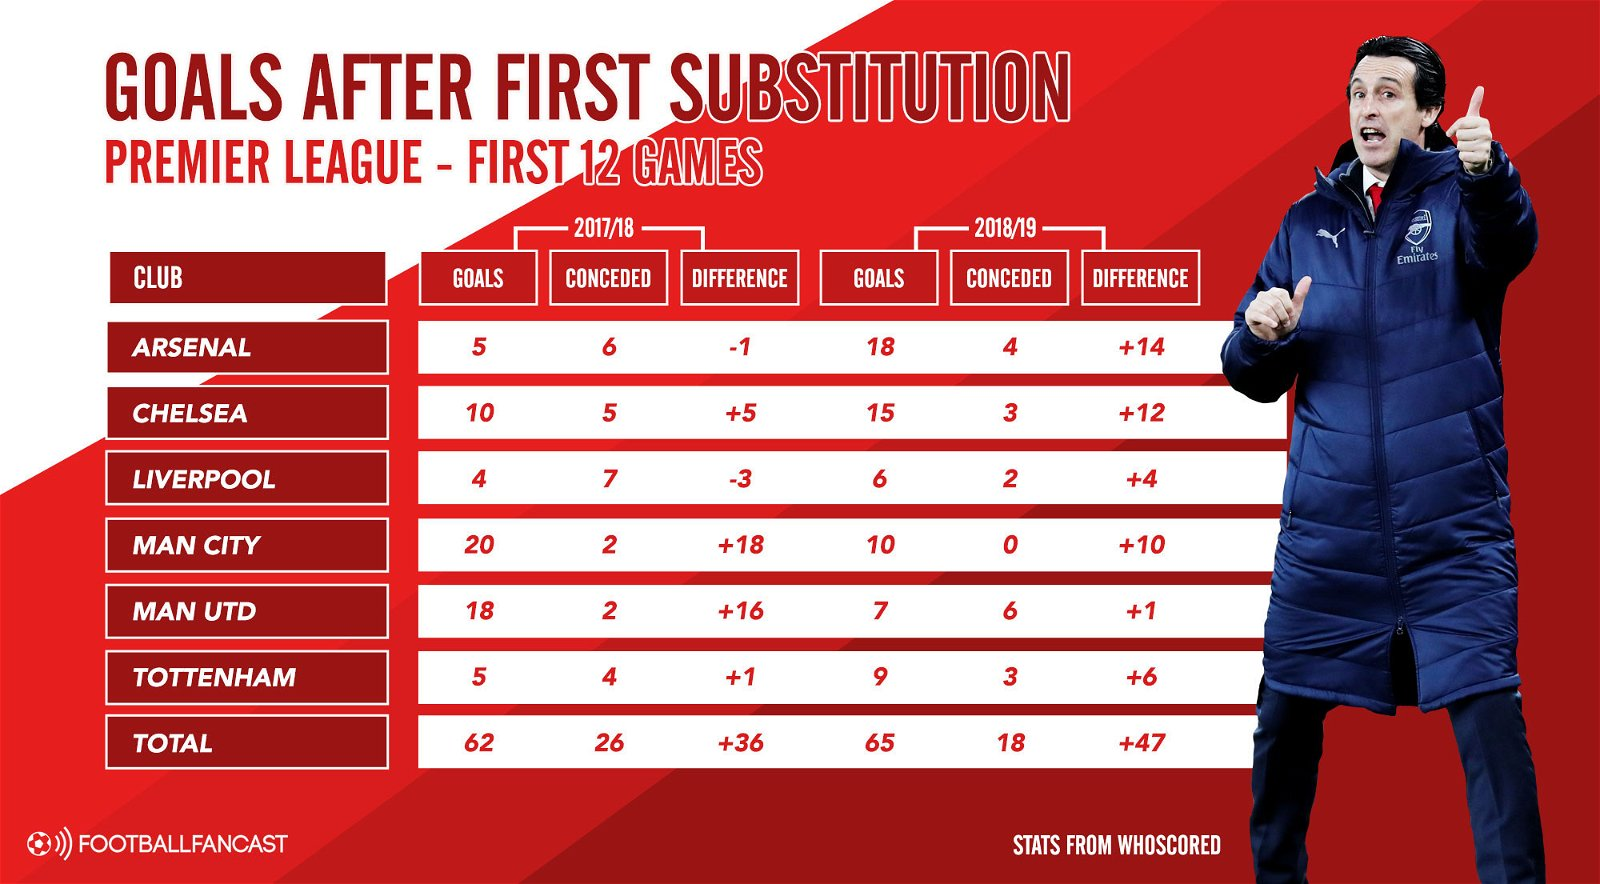 Goals after substitutions - Goal Difference